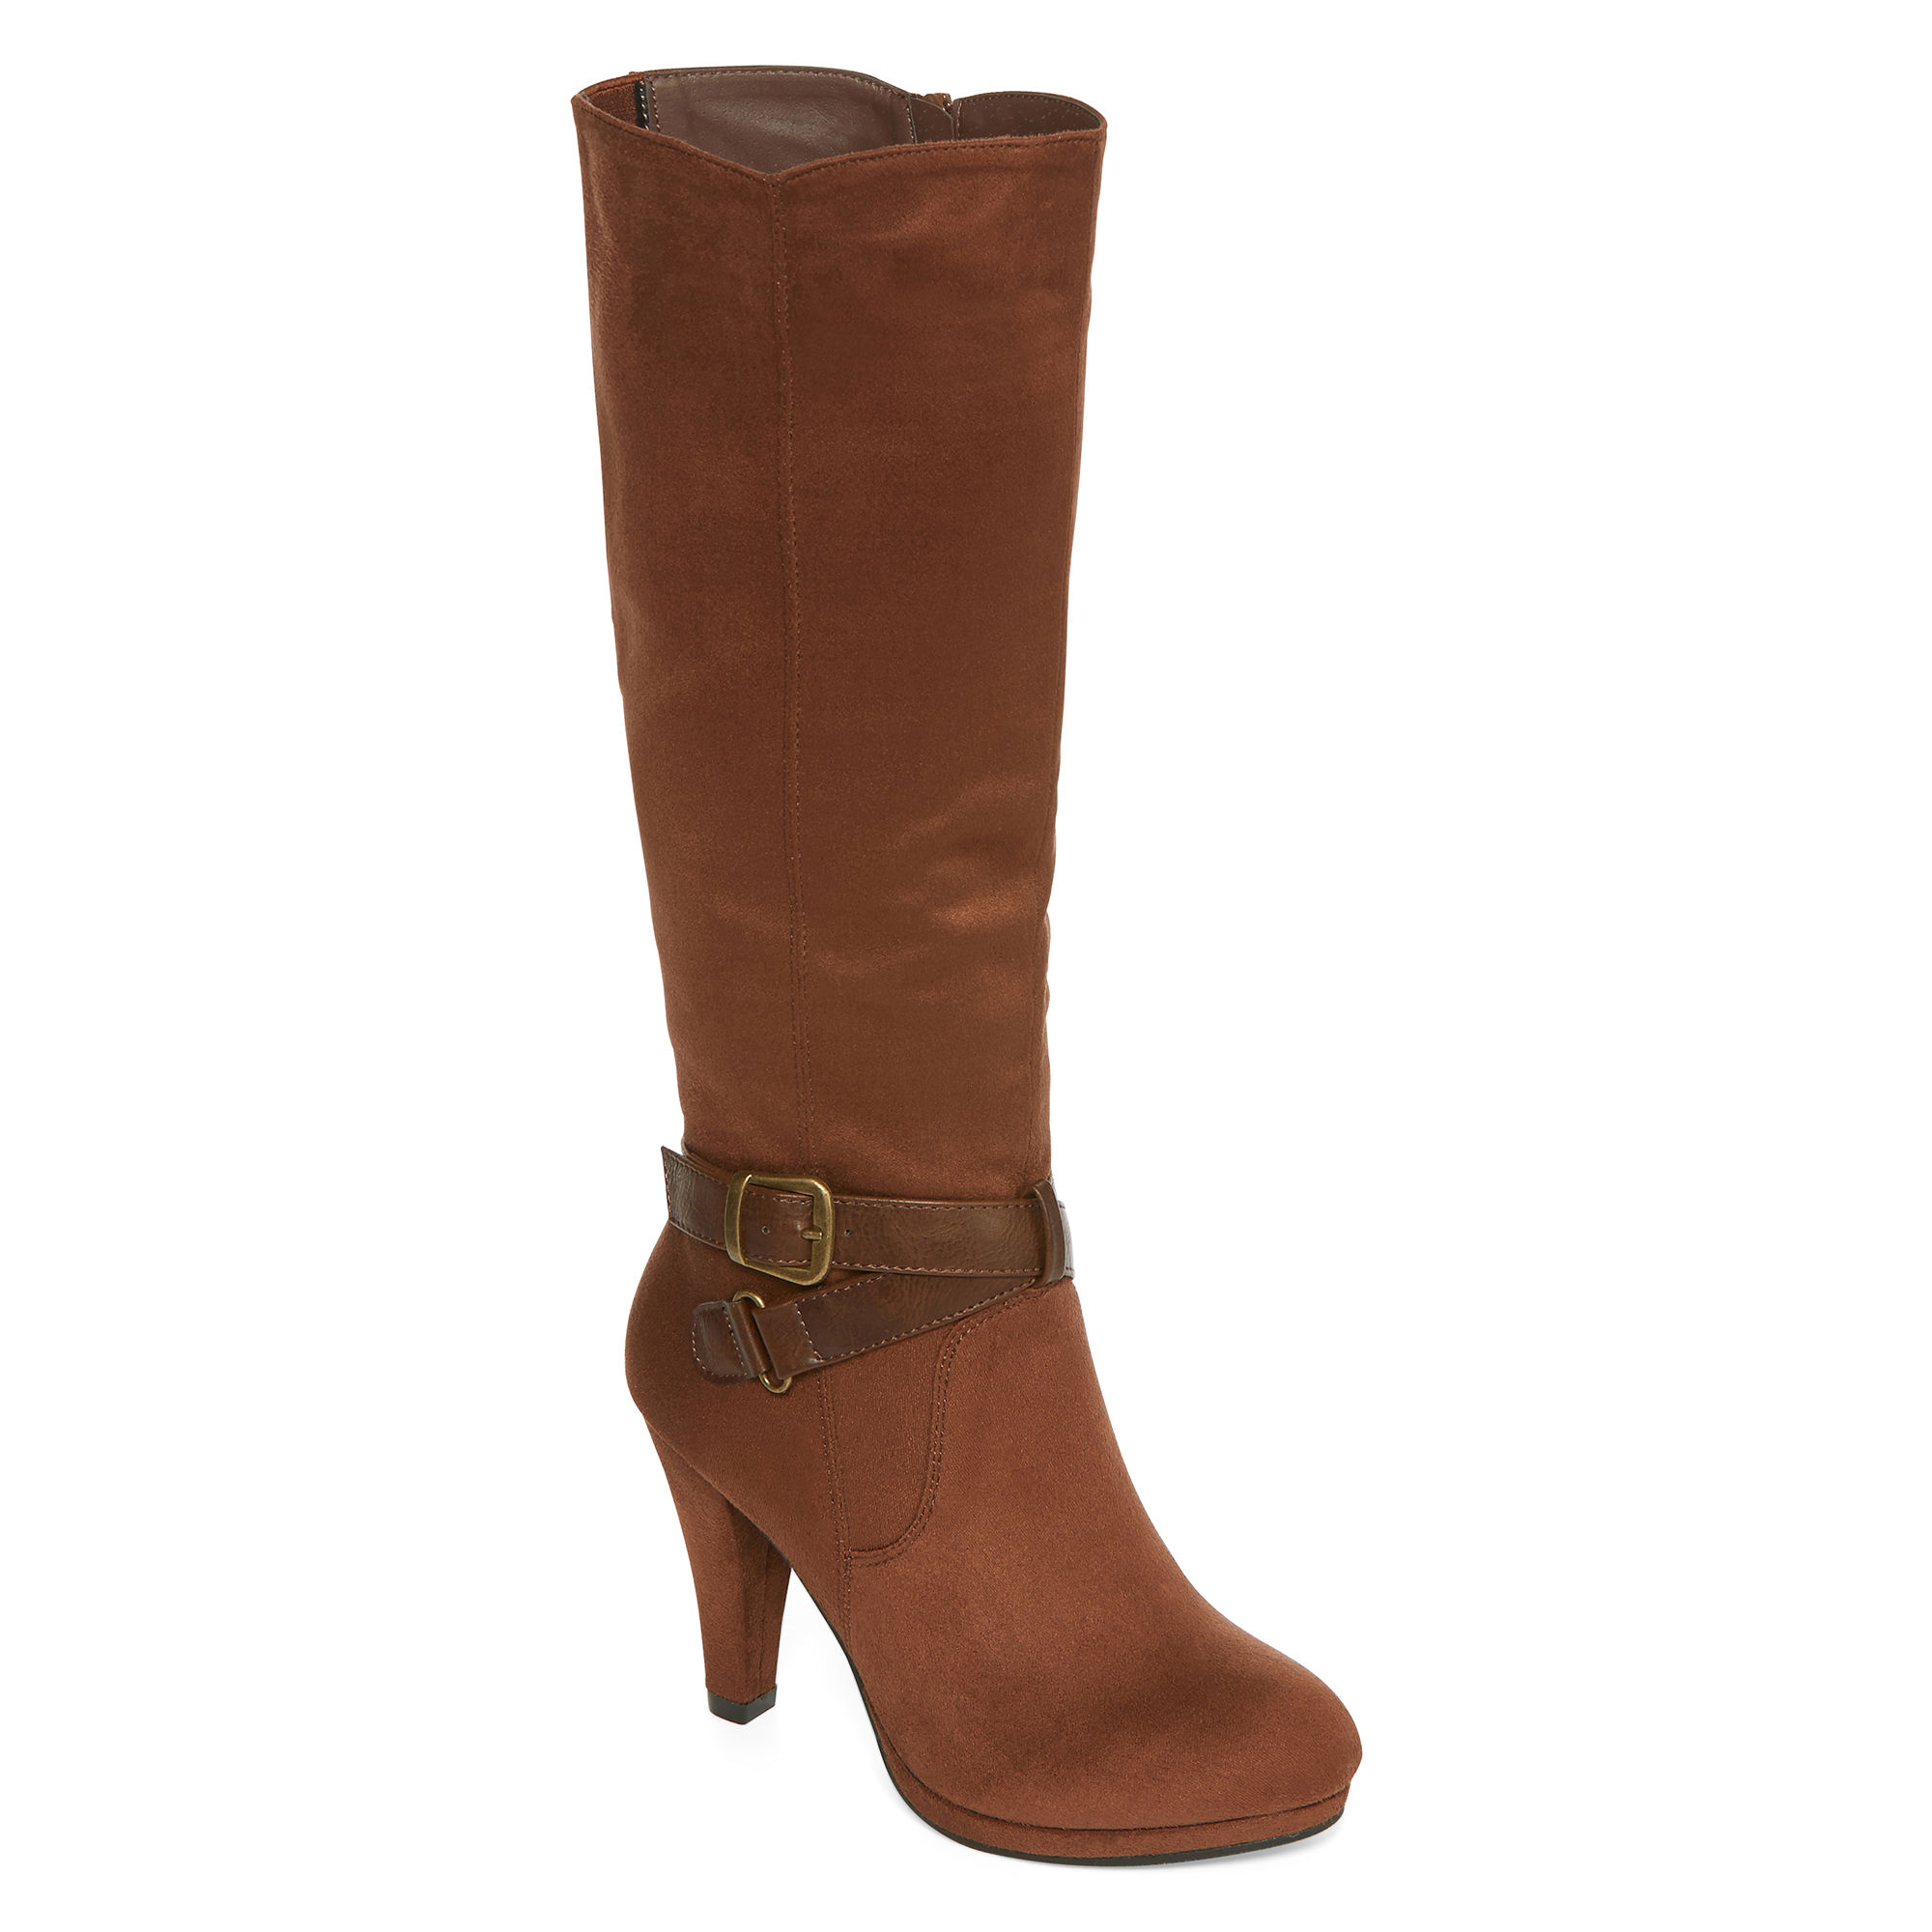 2 Lips Too Maple Womens Strappy Boots - Wide Calf